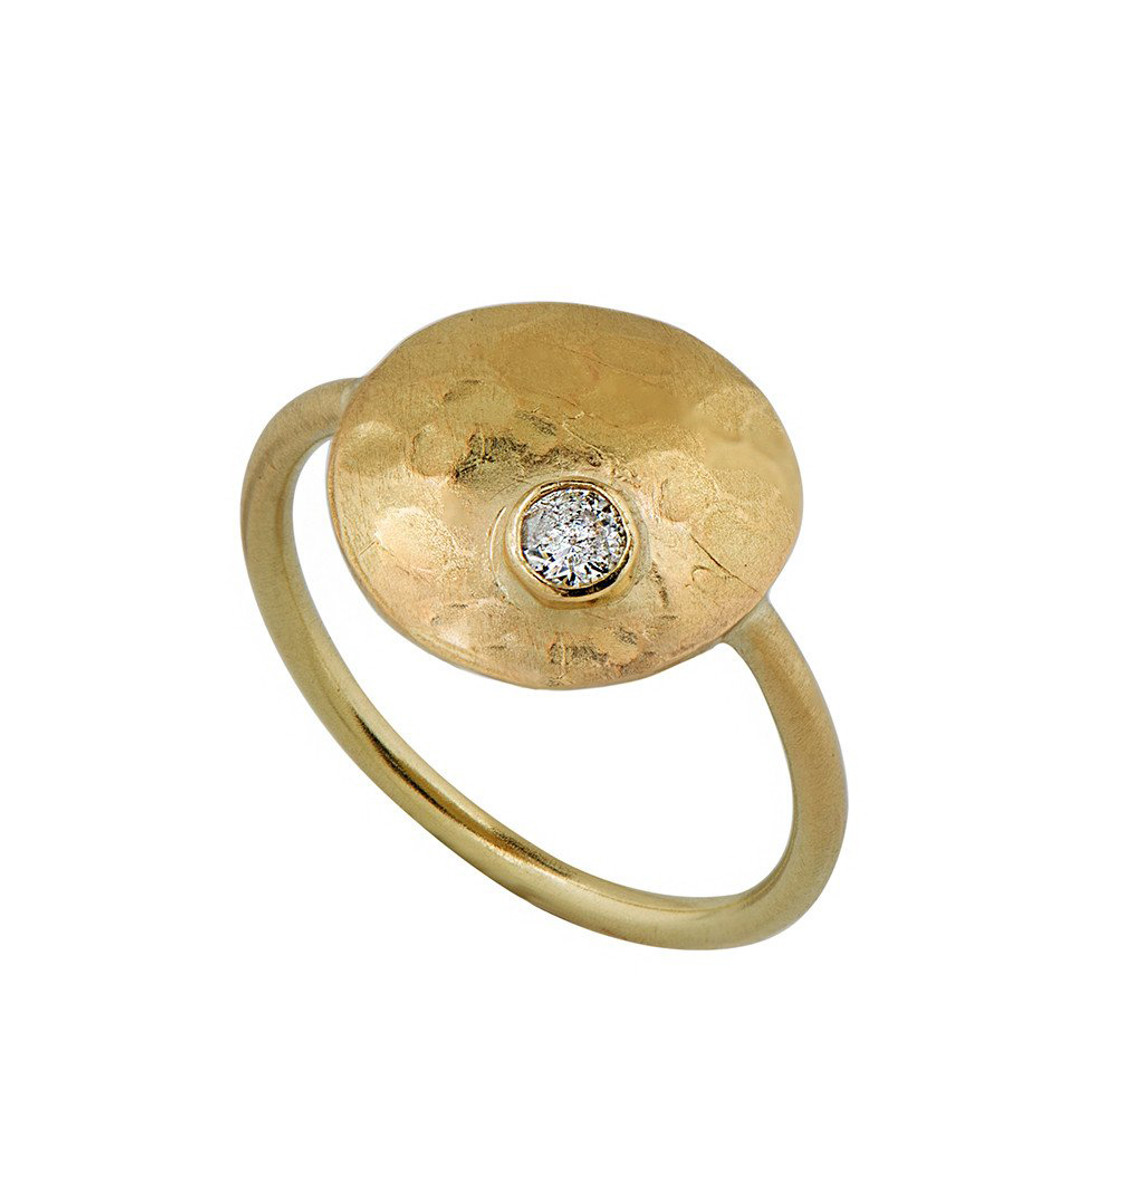 Artful Hand Gold Ring - New Arrival